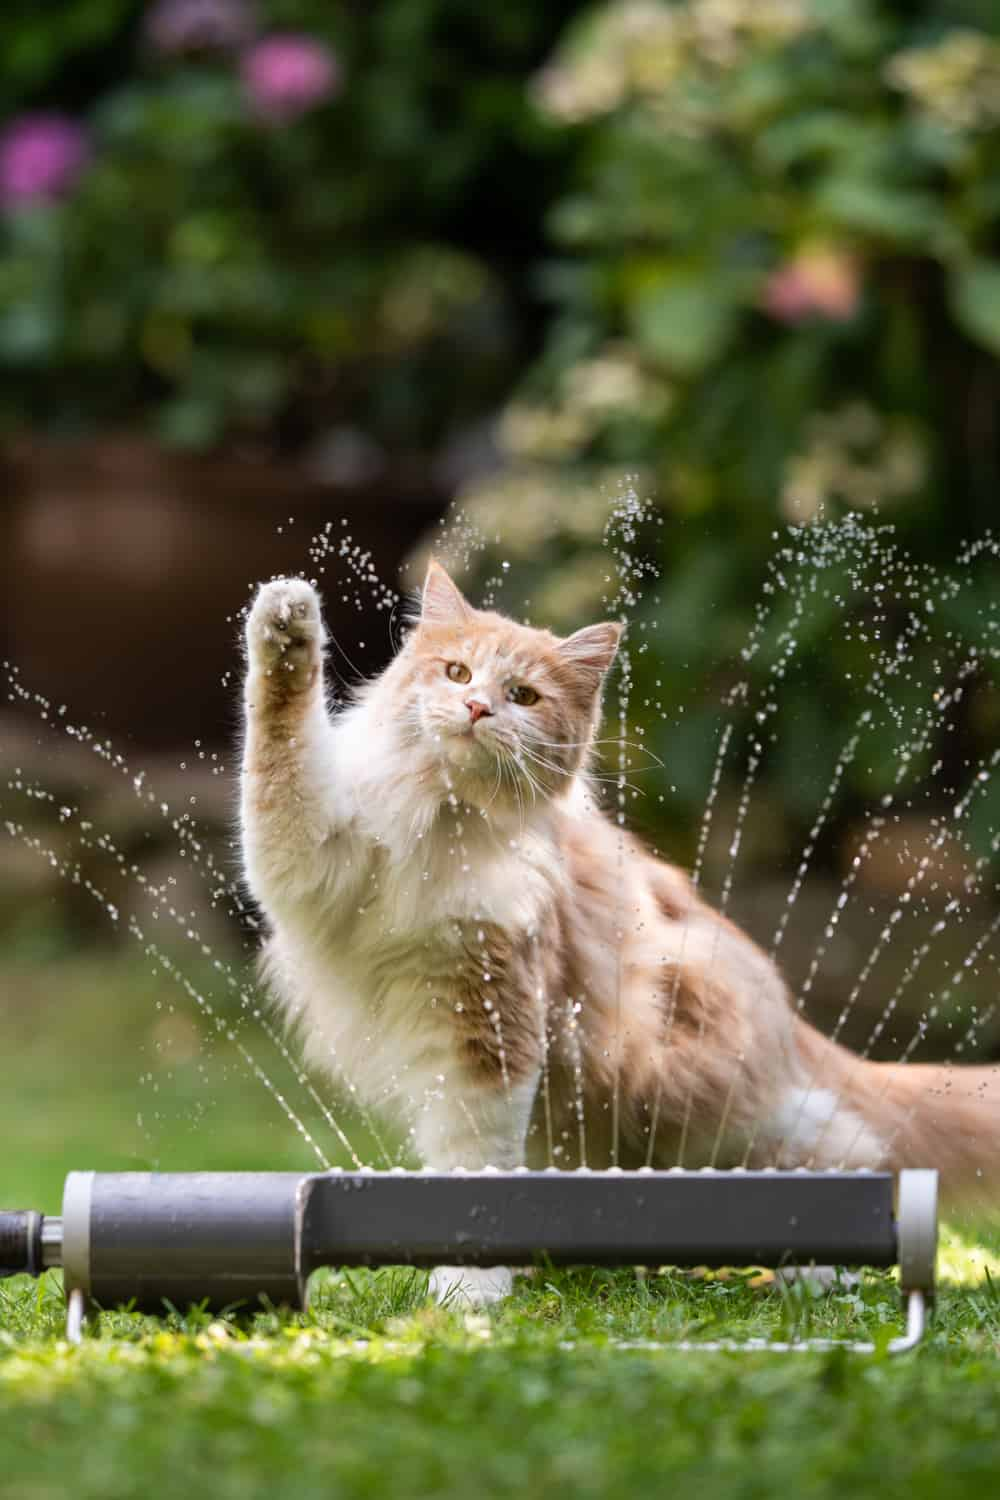 Scare away cats with a motion-activated sprinkler